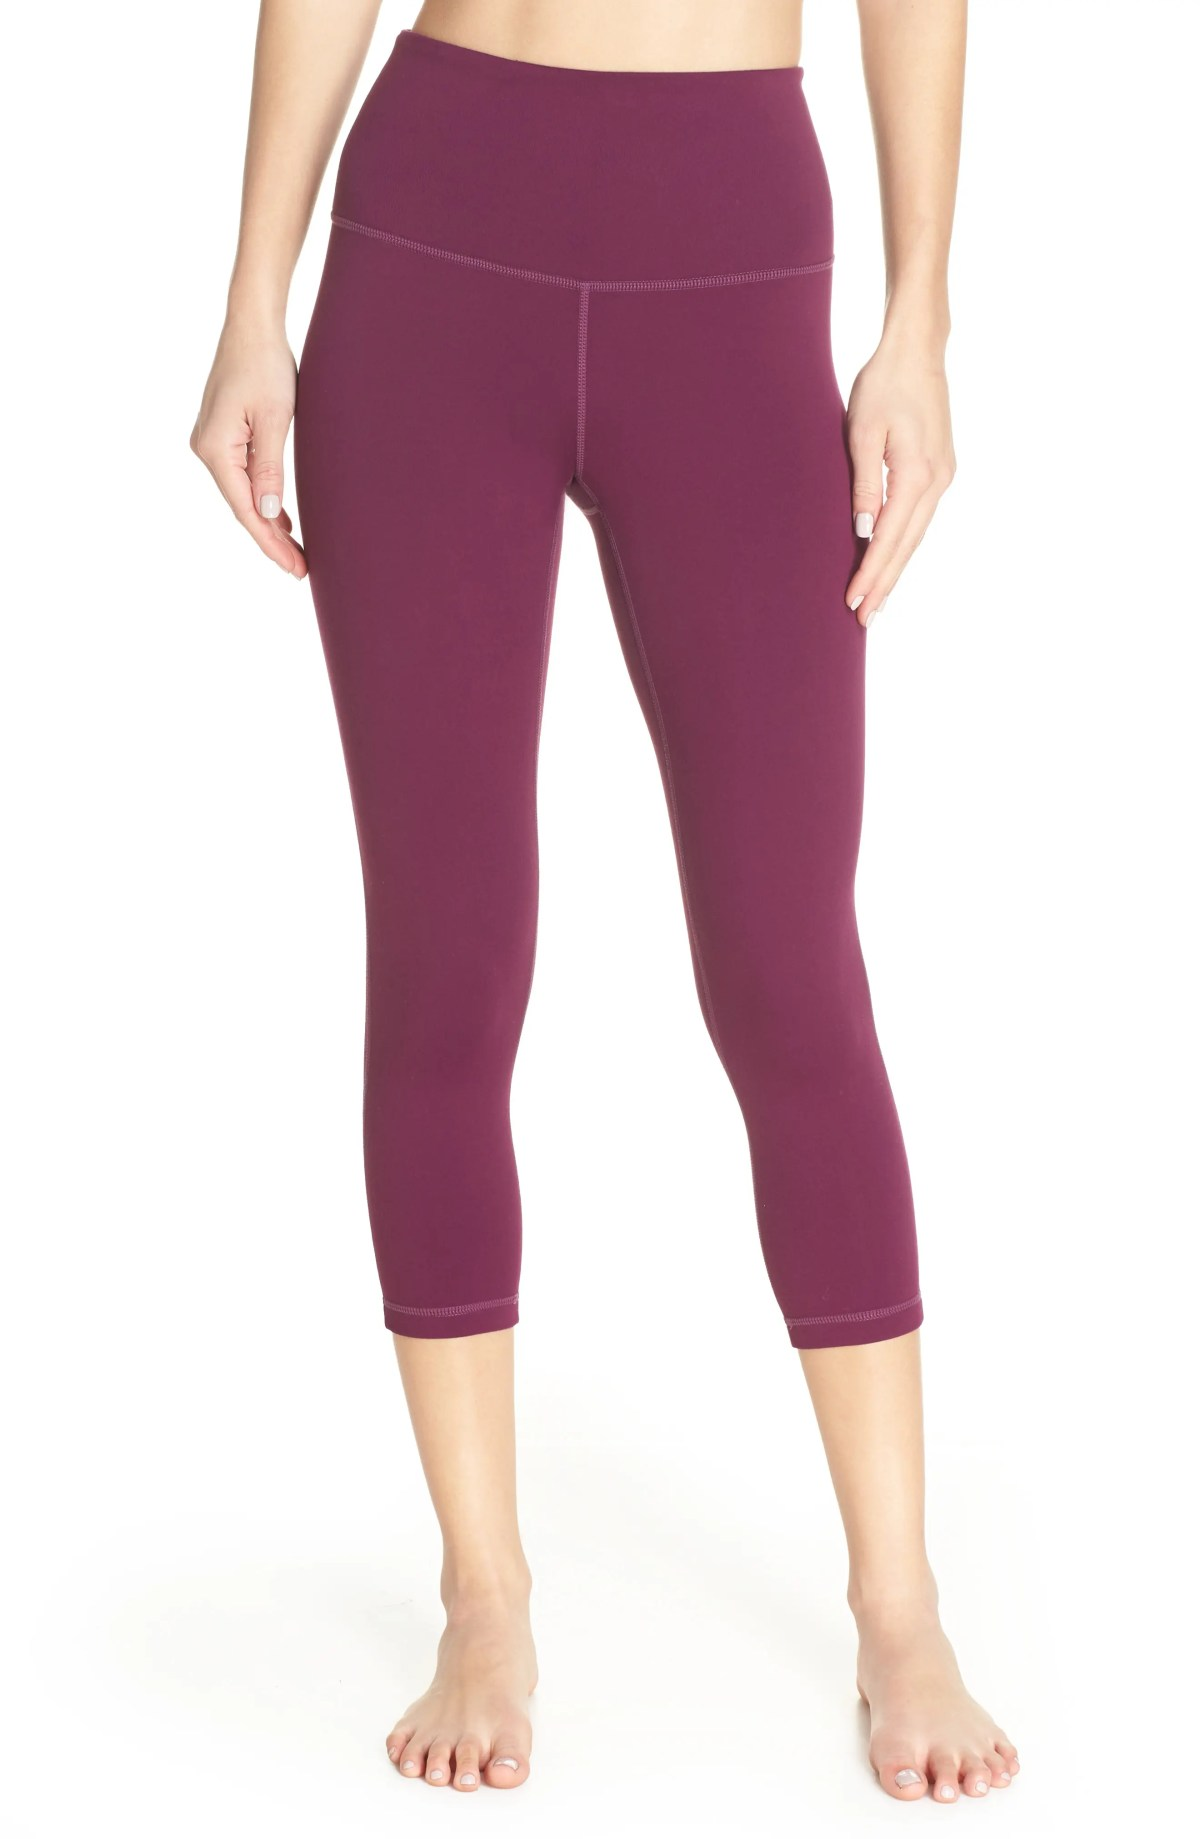 ZELLA Live In High Waist Crop Leggings, Main, color, PURPLE ODYSSEY